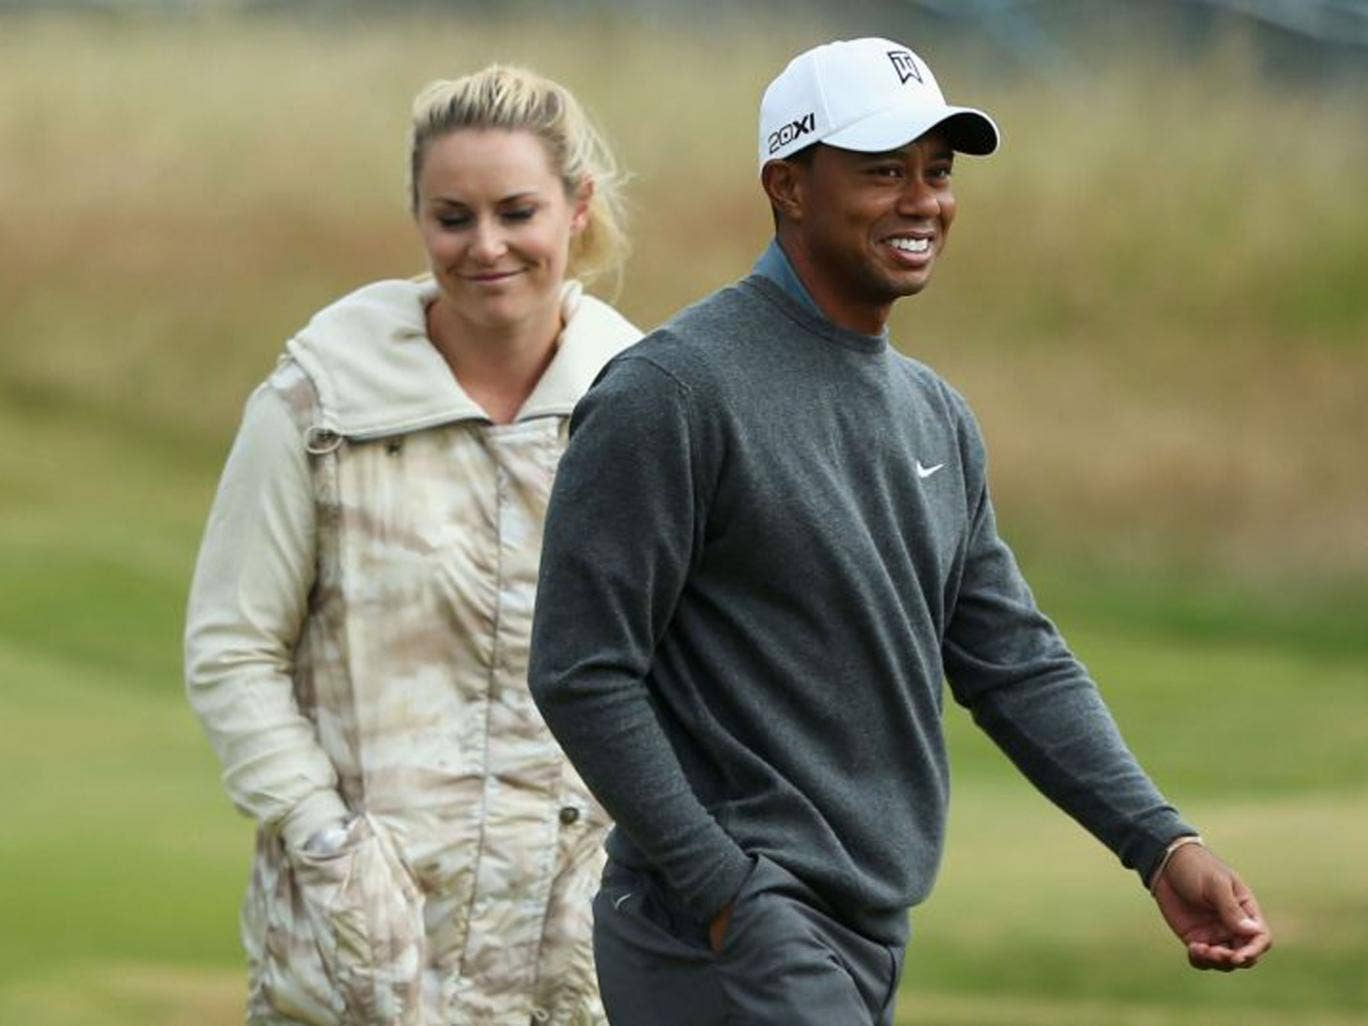 Tiger Woods and his partner, the skiier Lindsey Vonn, are all smiles as they walk the course ahead of this week's Open at Muirfield